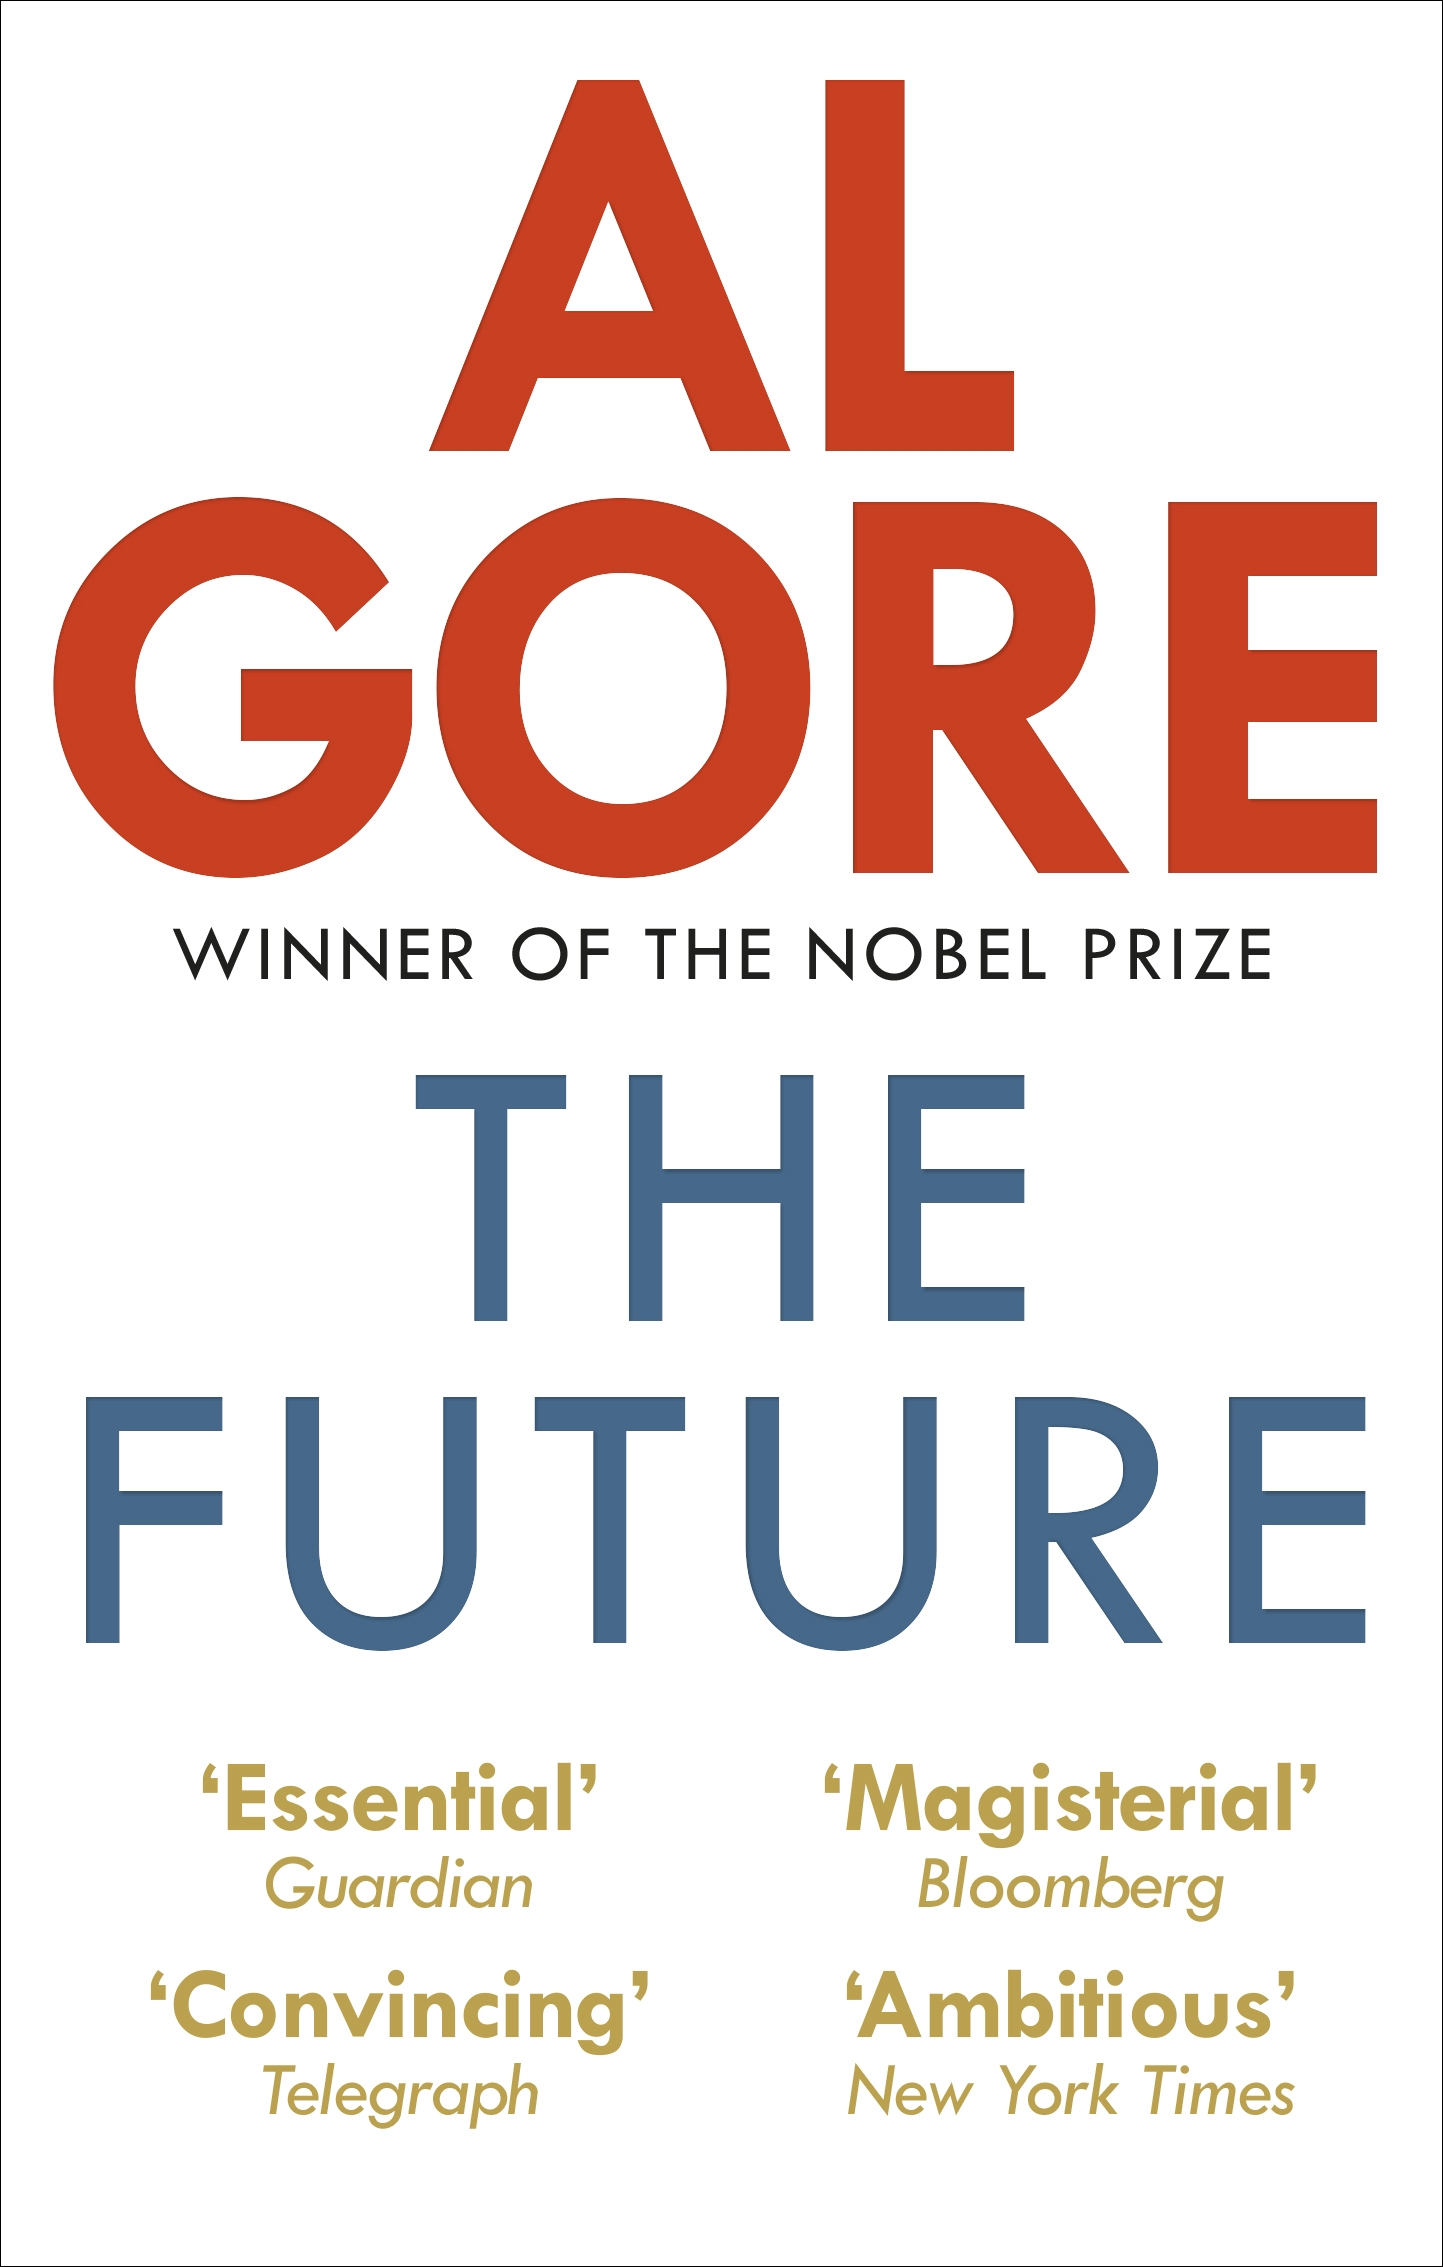 al gore dysfunctional society Al gore's new movie an inconvenient sequel: truth to power is reviewed for its accuracy in climate science and energy policy as was the case with gore's first movie (an inconvenient truth), the movie is bursting with bad science, bad policy and some outright falsehoods .